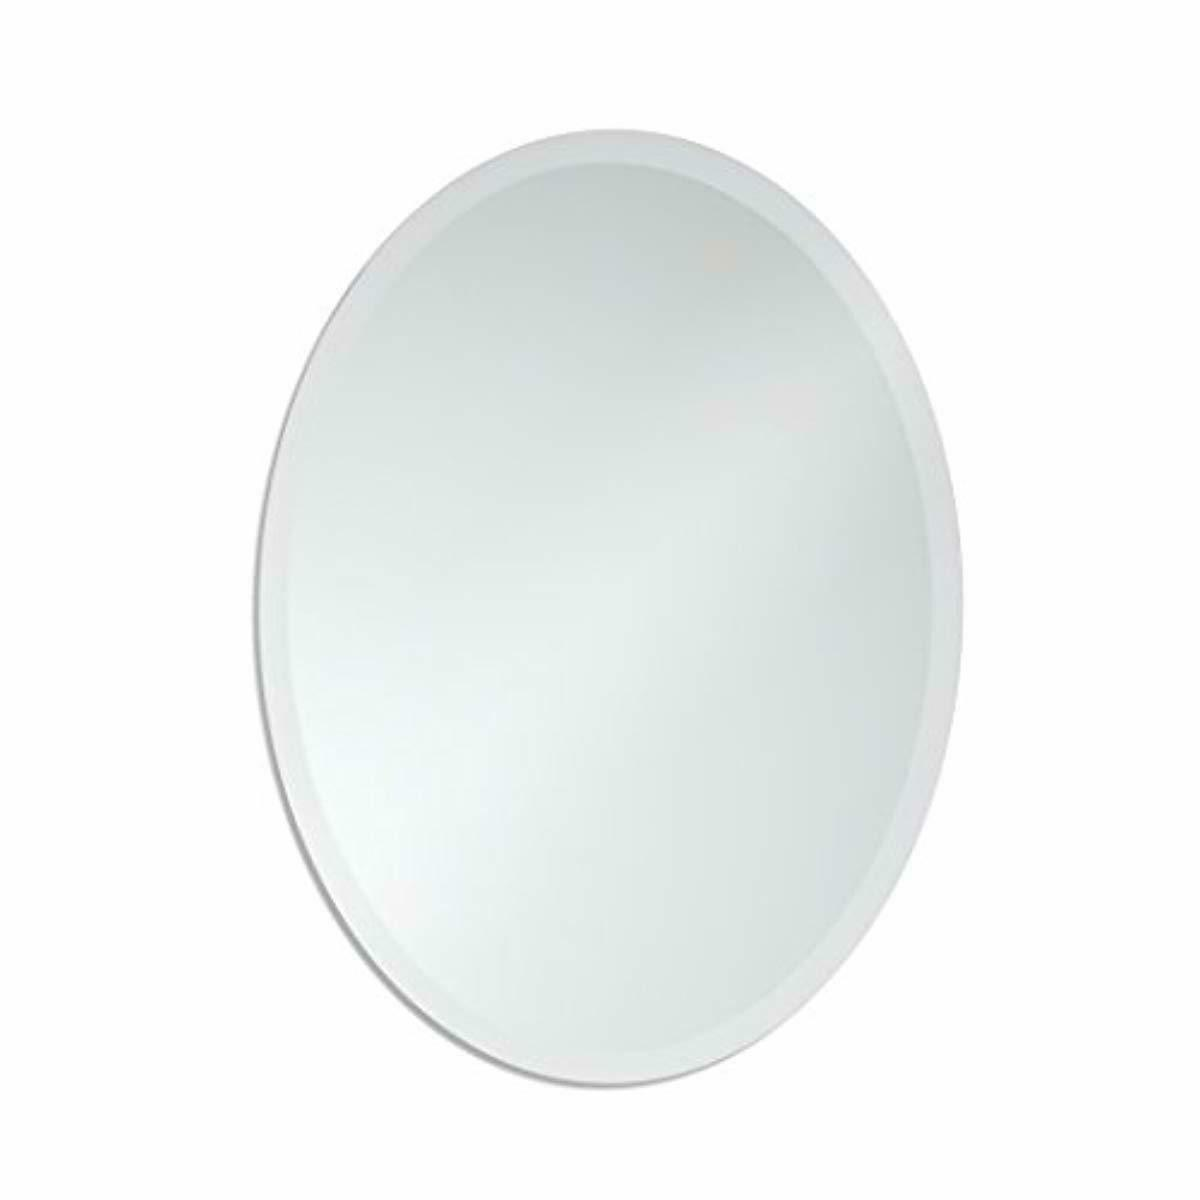 beveled oval wall makeup mirror small frameless